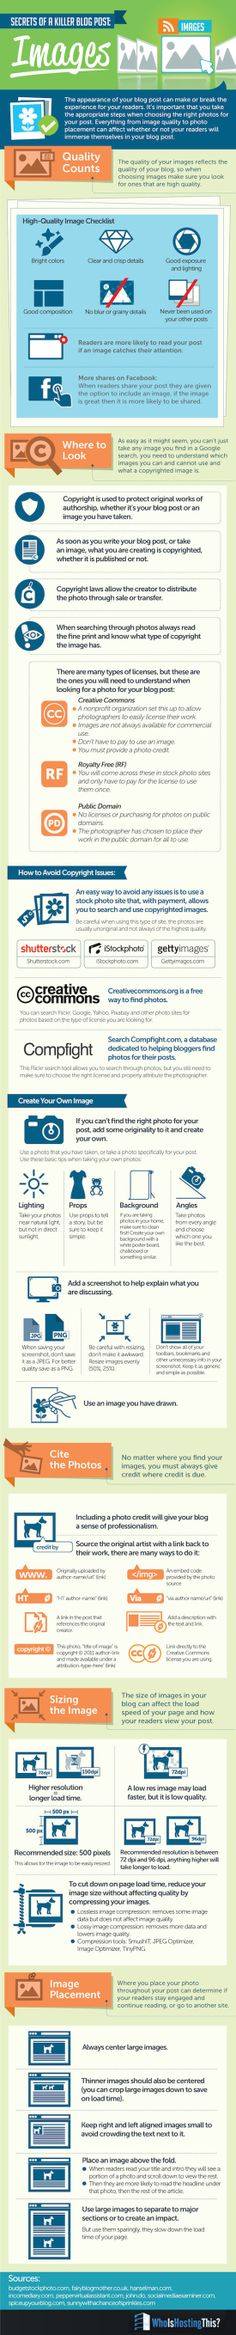 Images Are the Ultimate Secret of Killer Blog Posts #INFOGRAPHIC